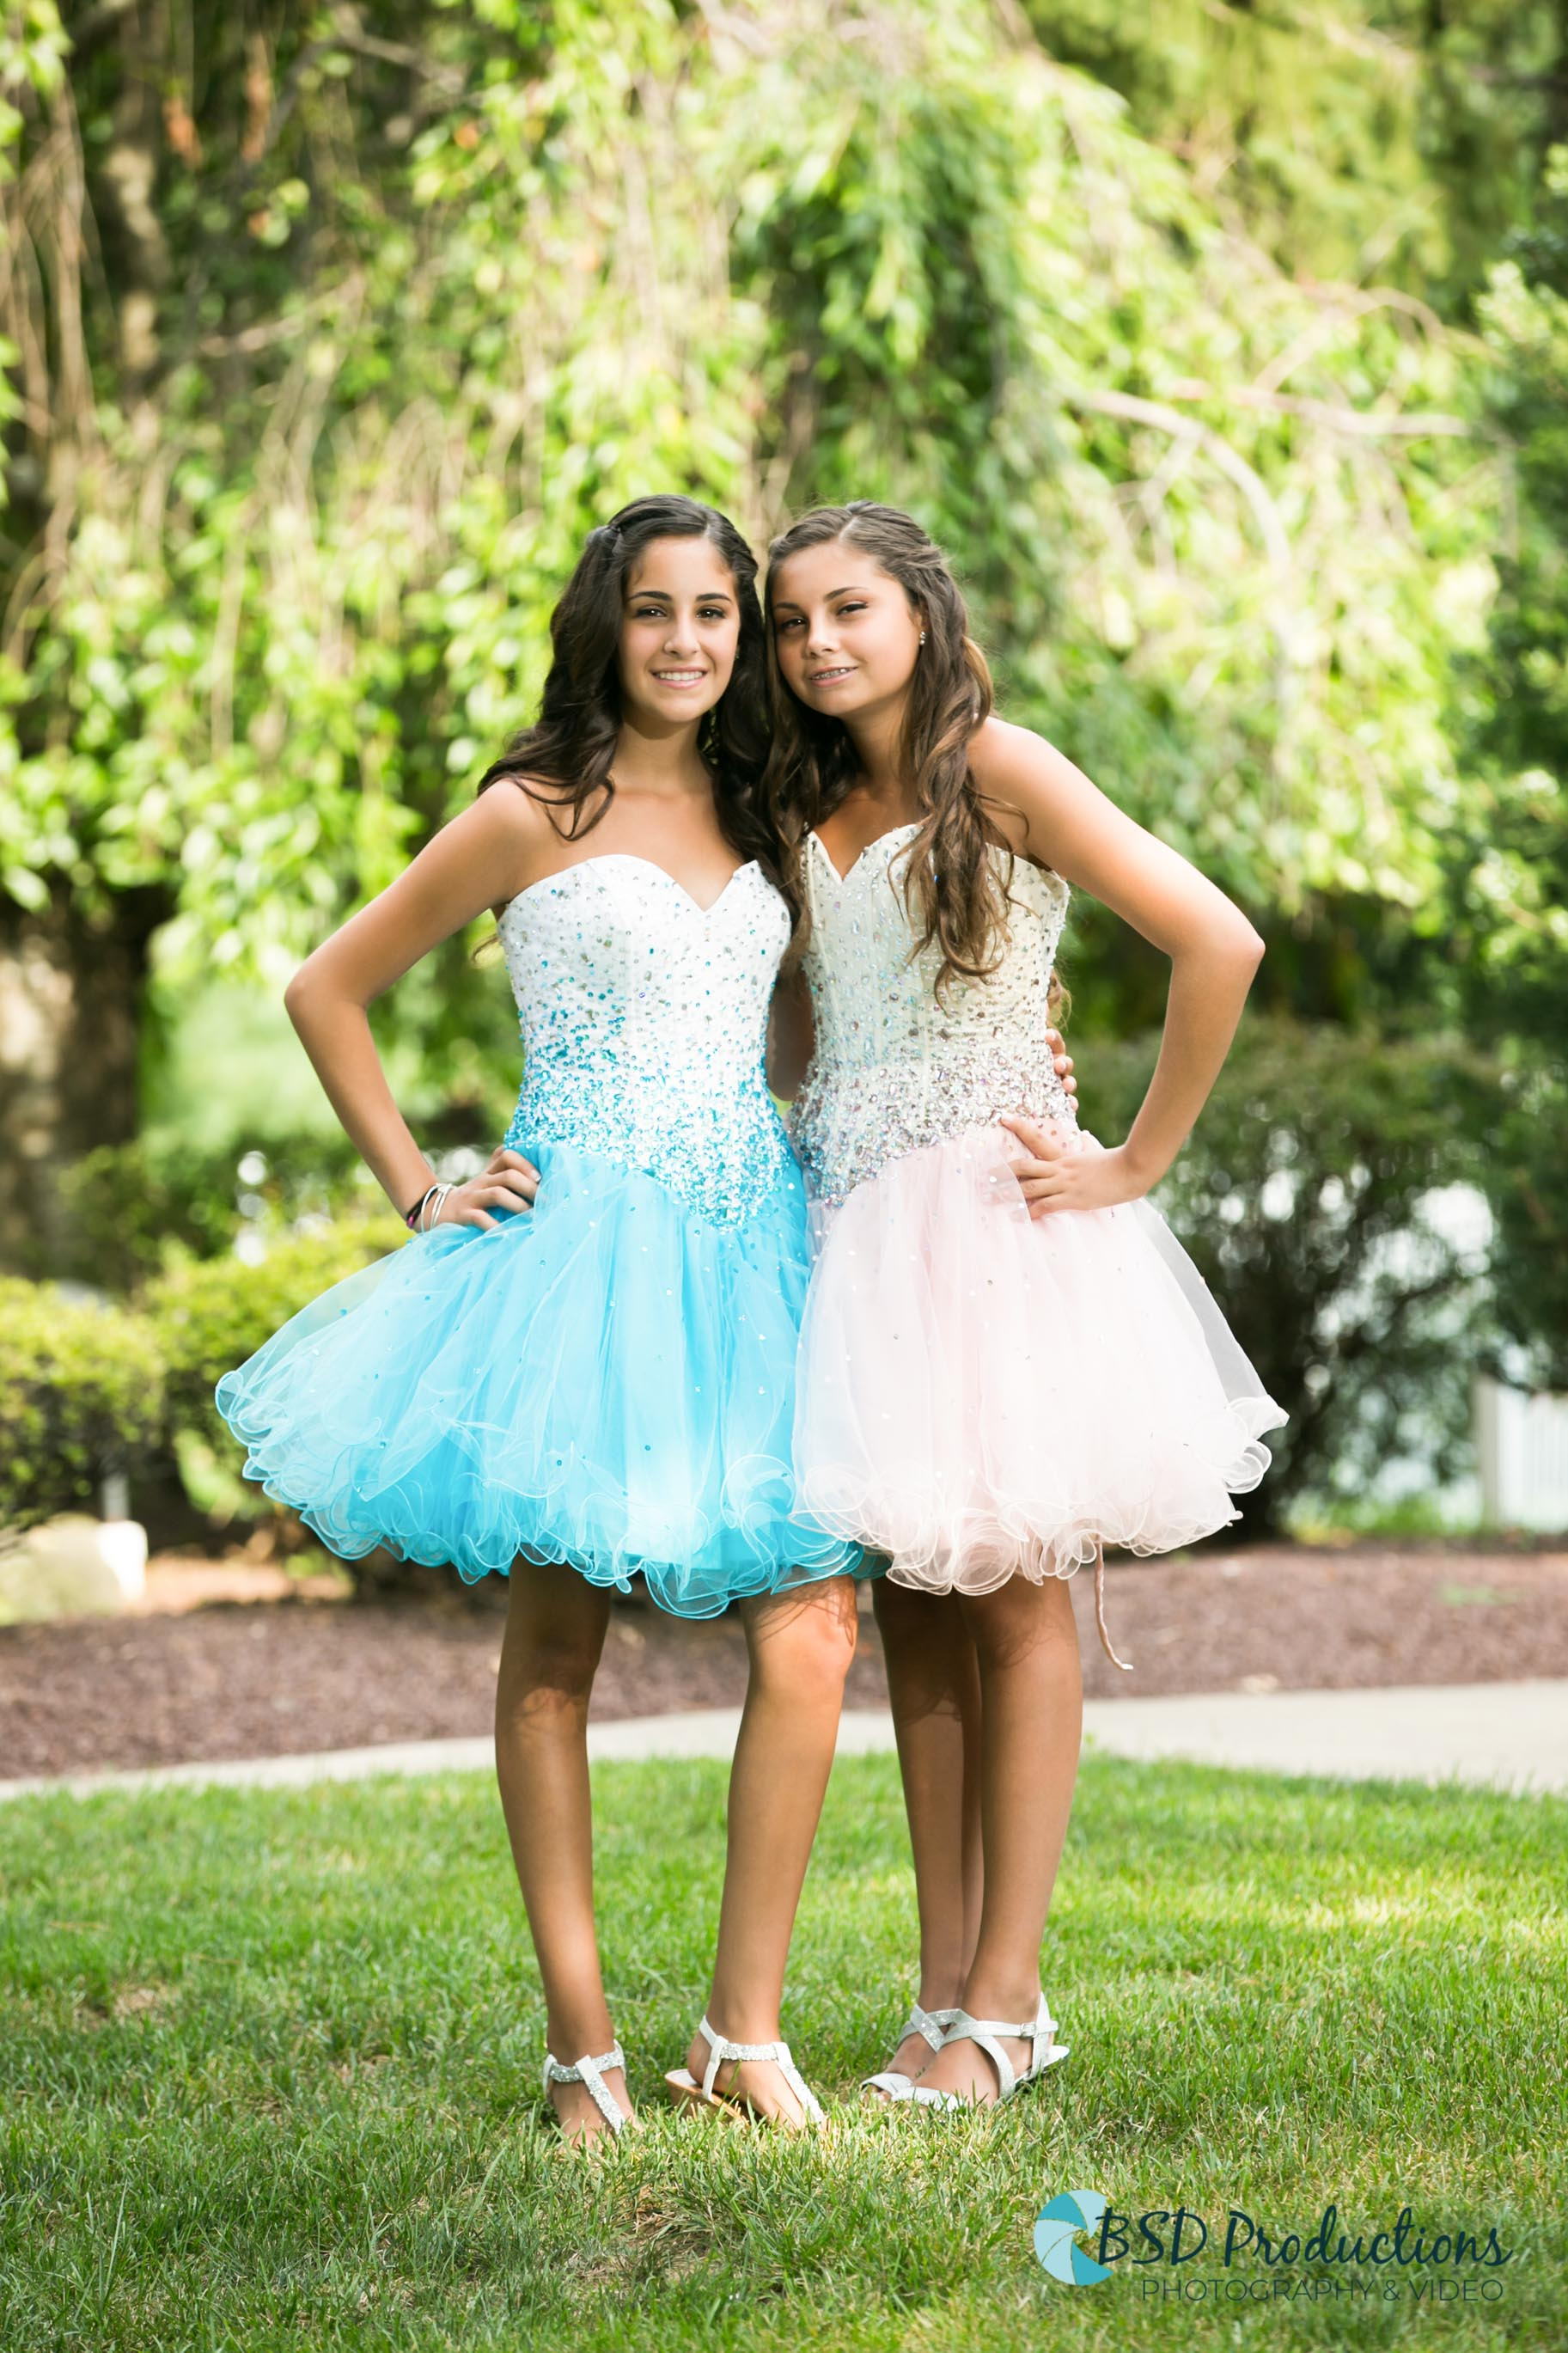 D_R_4554 Bat Mitzvah – BSD Prodcutions Photography